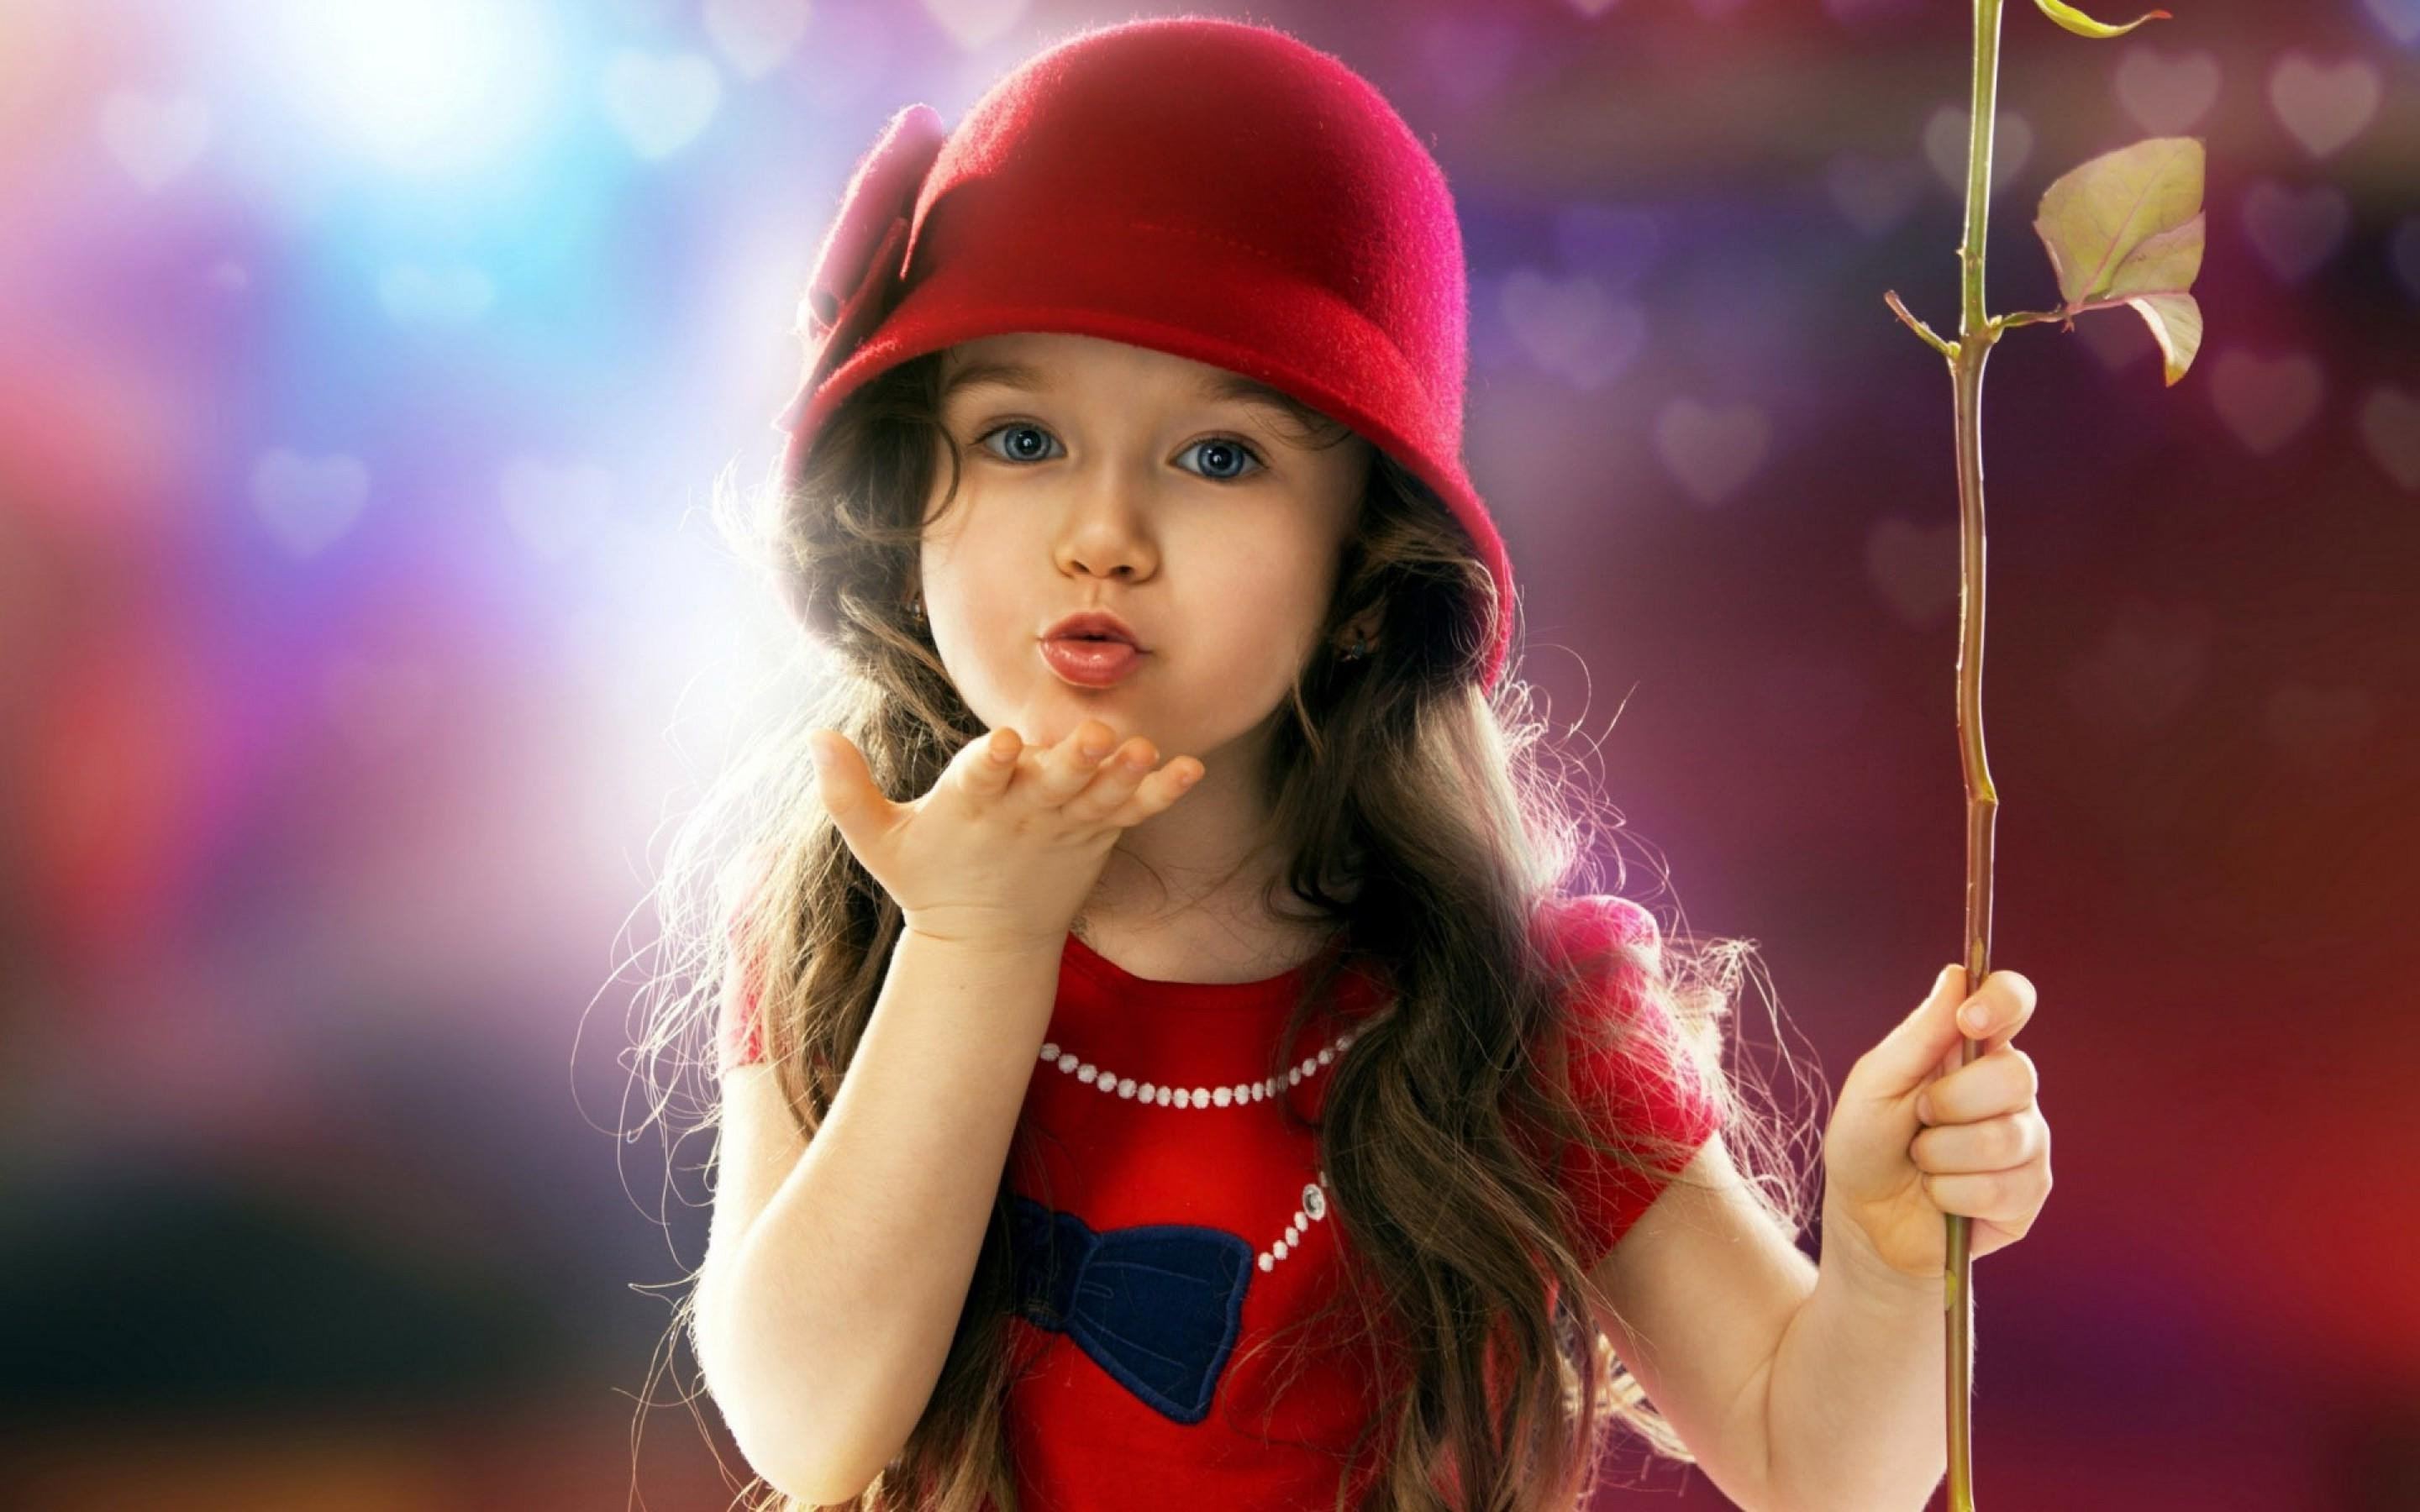 Little child Love Wallpaper : Little Girl Blowing a Kiss, HD cute, 4k Wallpapers, Images, Backgrounds, Photos and Pictures